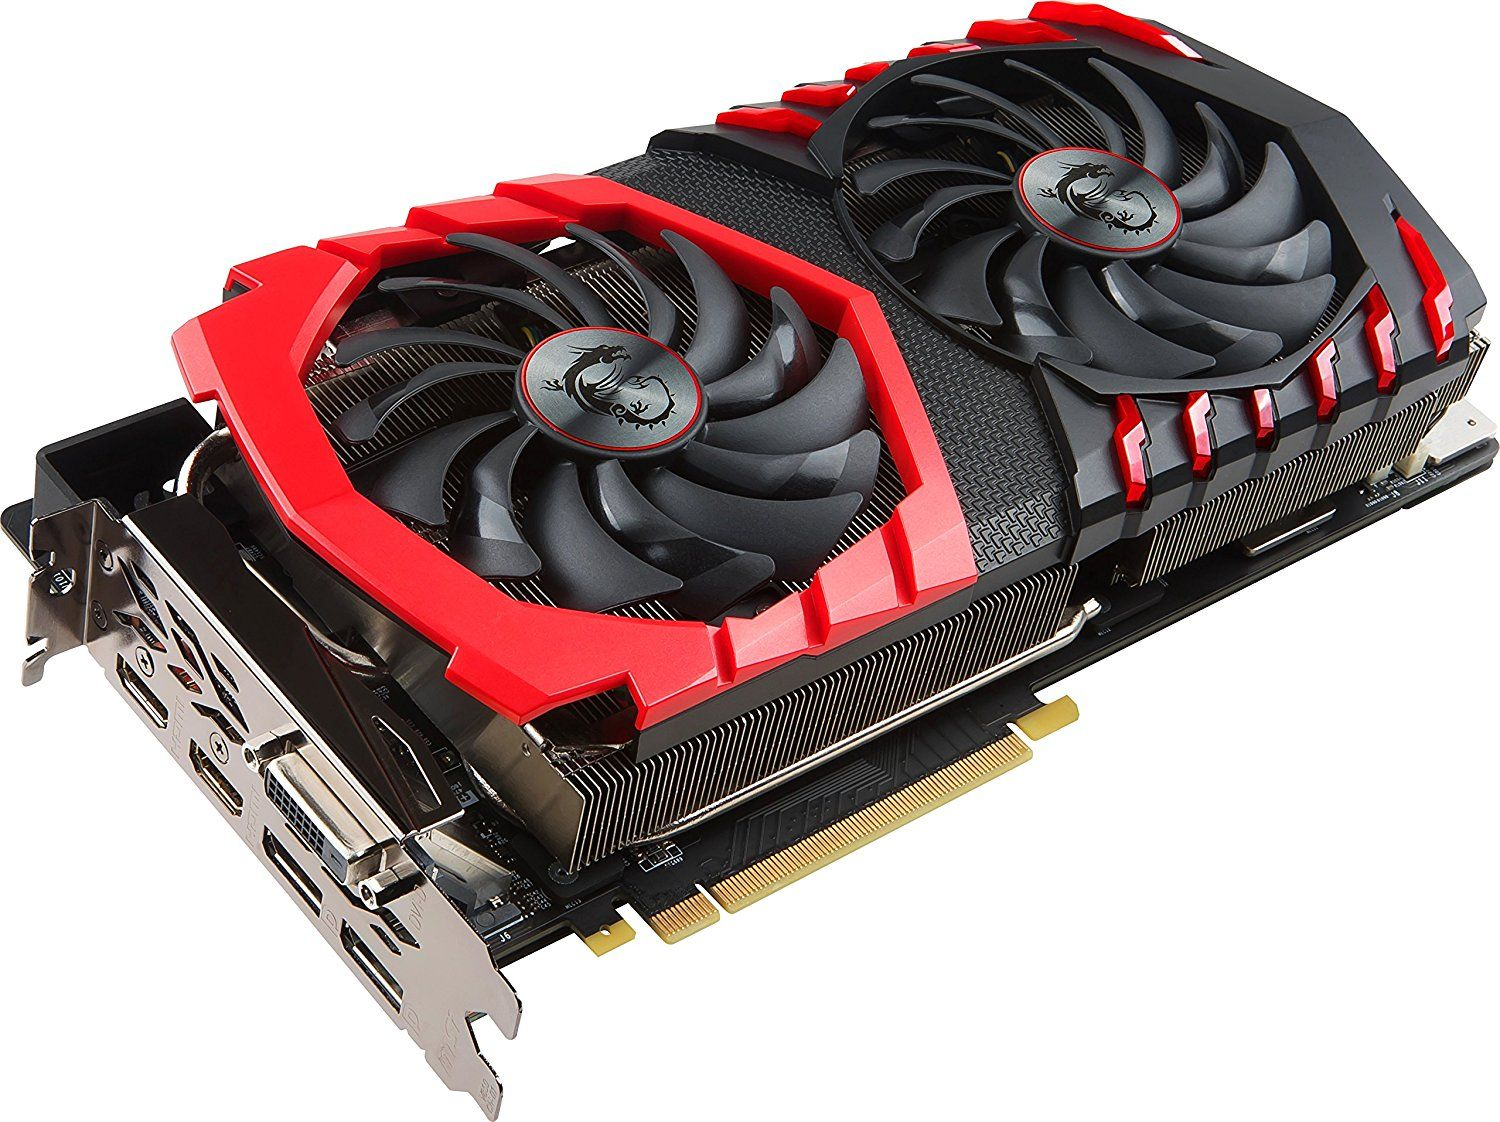 Evga Geforce Gtx 1080 Ti Founders Edition Gaming 11gb Gddr5x Led Dx12 Osd Support Pxoc Graphic Cards 11g P4 6390 Kr Graphic Card Nvidia Video Card